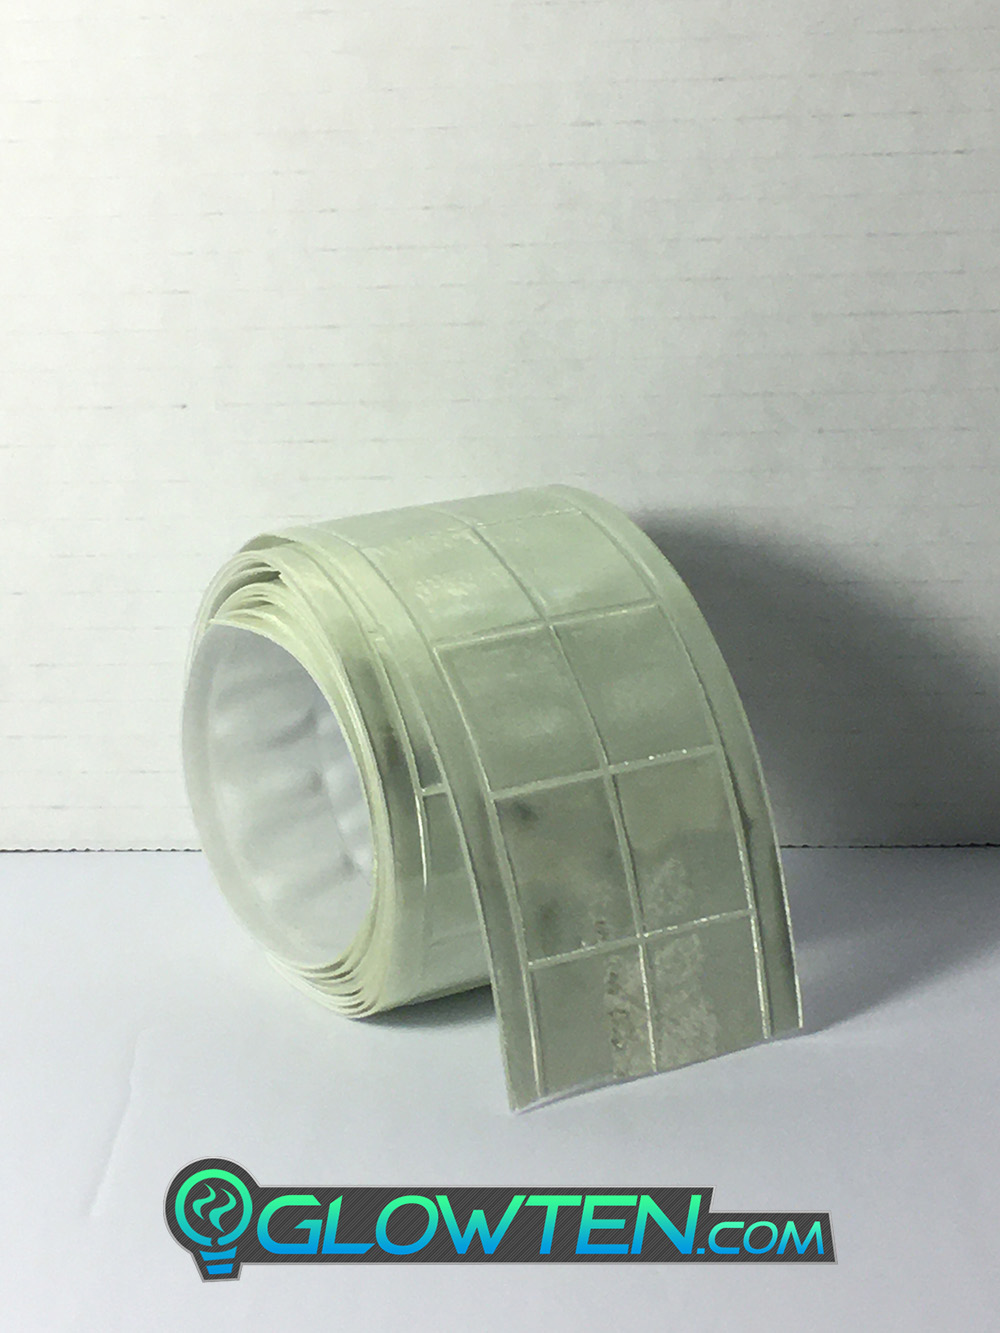 GLOWTEN.com - Reflector Glow Tape LUMINOUS Band Glow in the Dark See Better At Night Safety Hazard Cycling Reflective High-Visibility Band Biking at Night Bicycle picture photo cap preview pic image search 1